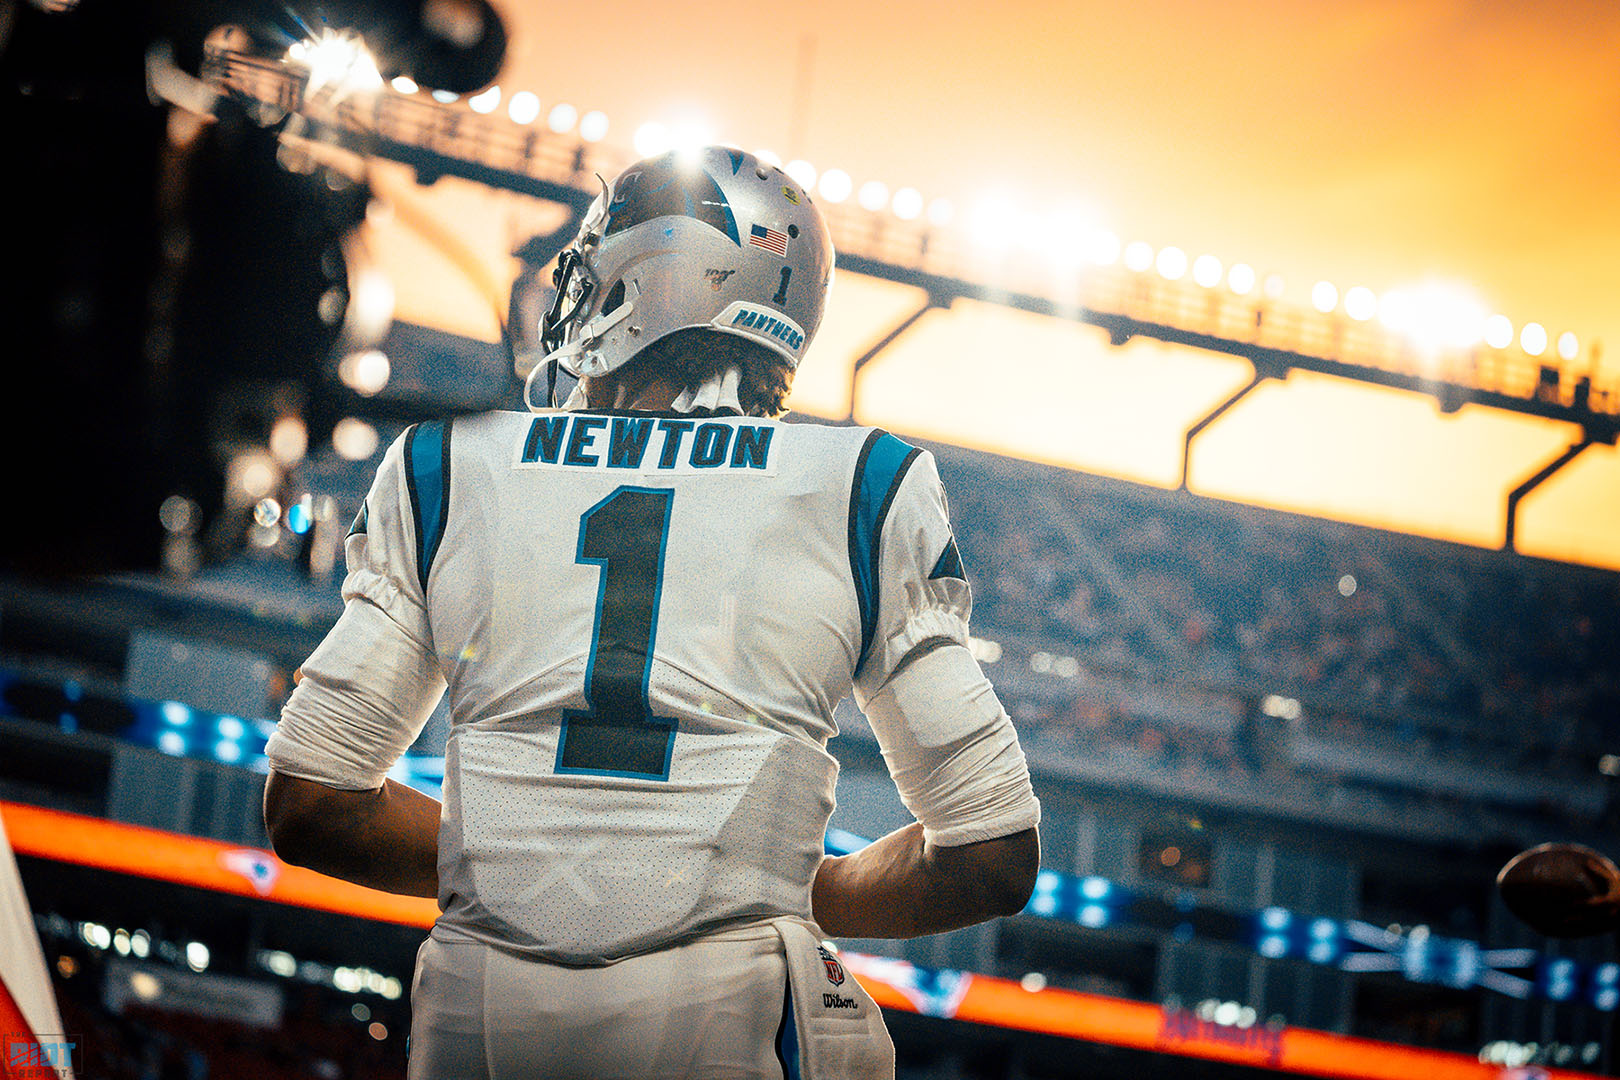 How The Cam Newton Era Ended Wasn't Fair – But The NFL Rarely Is.